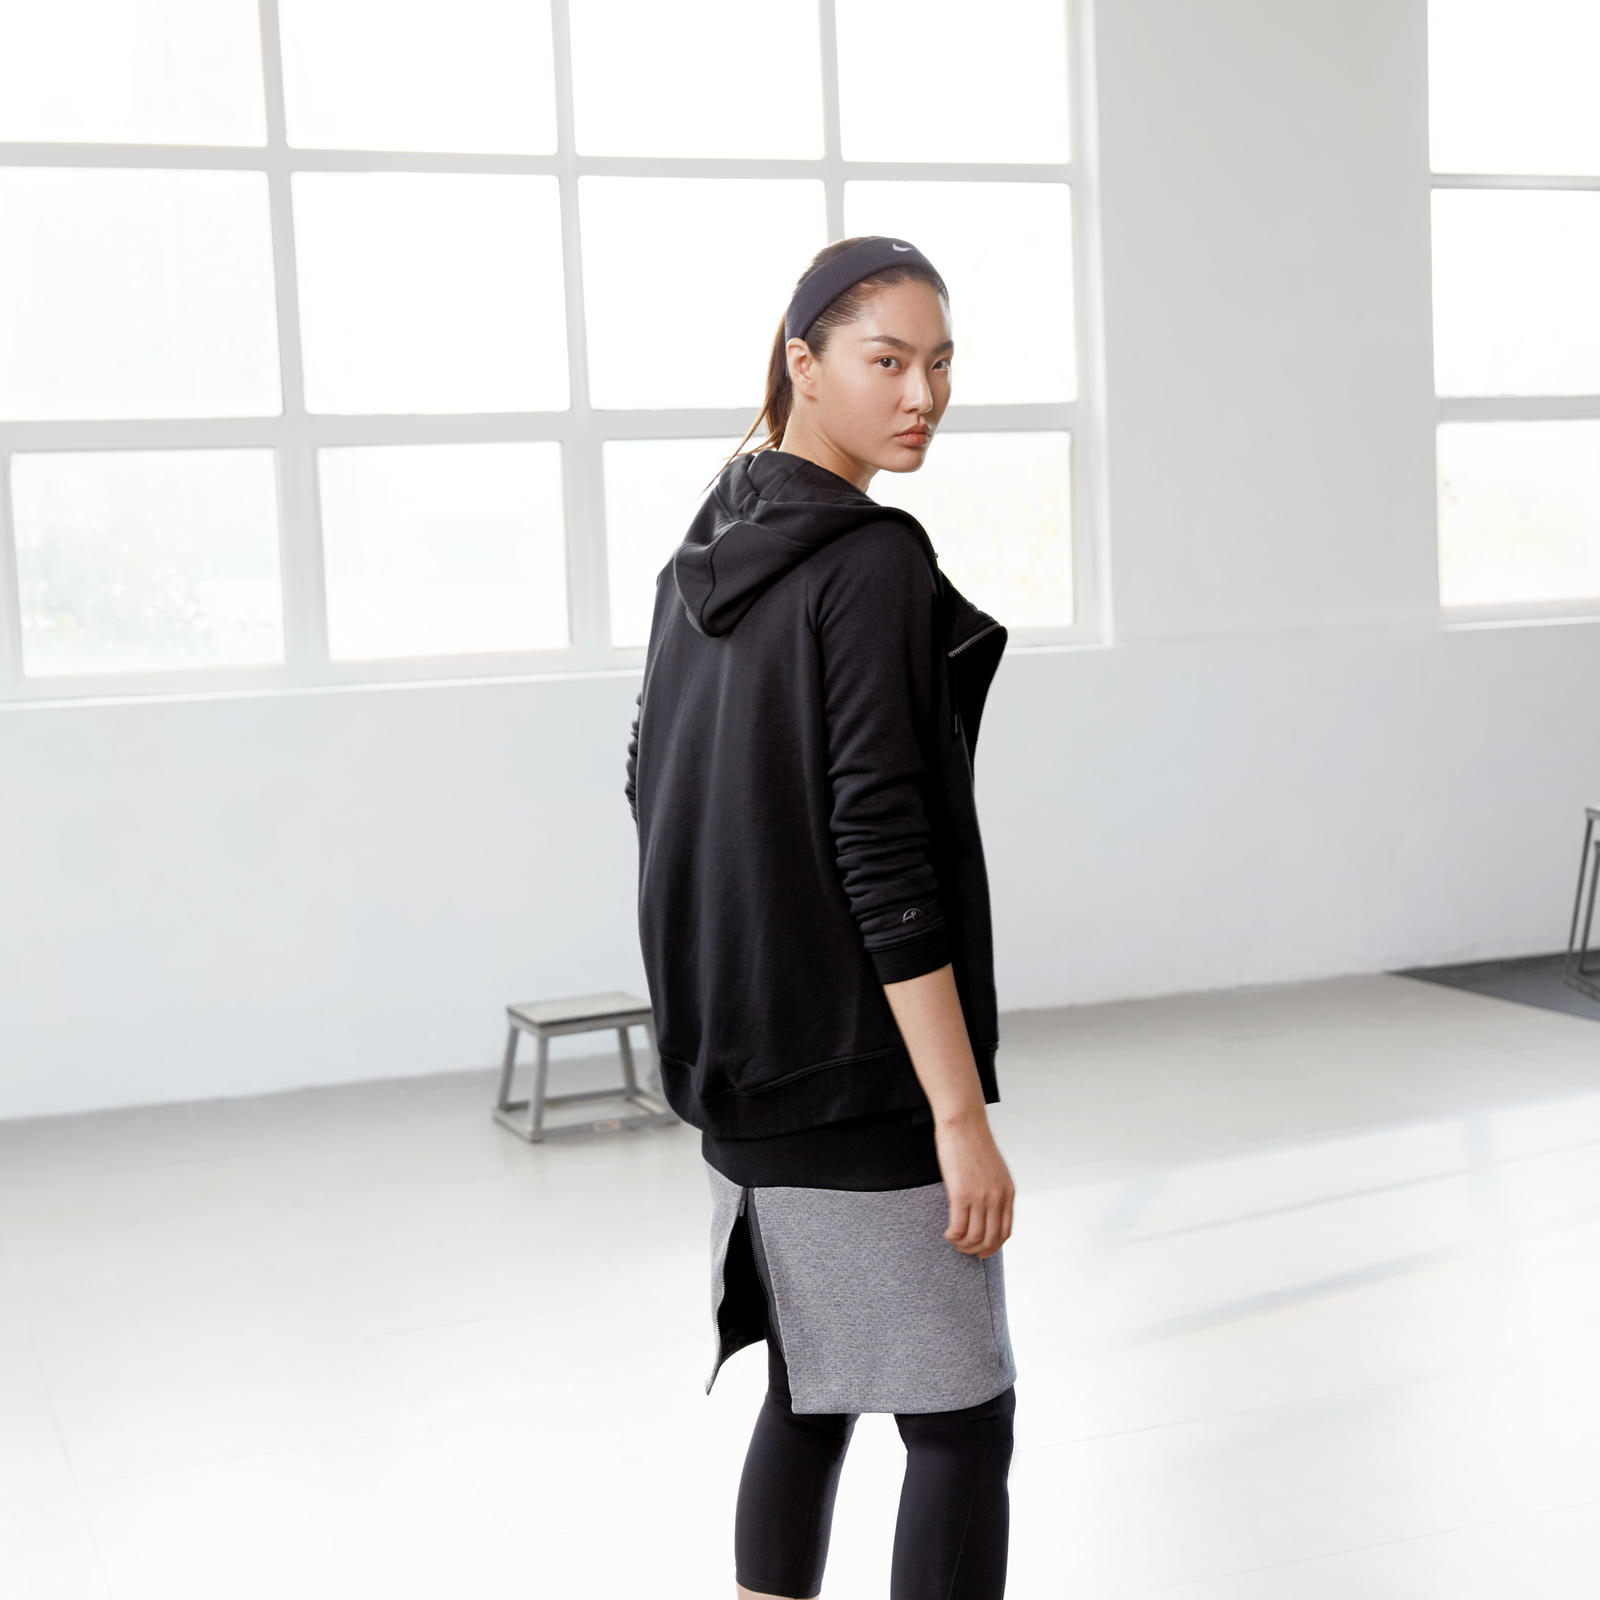 Nike Partners with Chinese Tennis Star Li Na to Introduce Signature Line 0